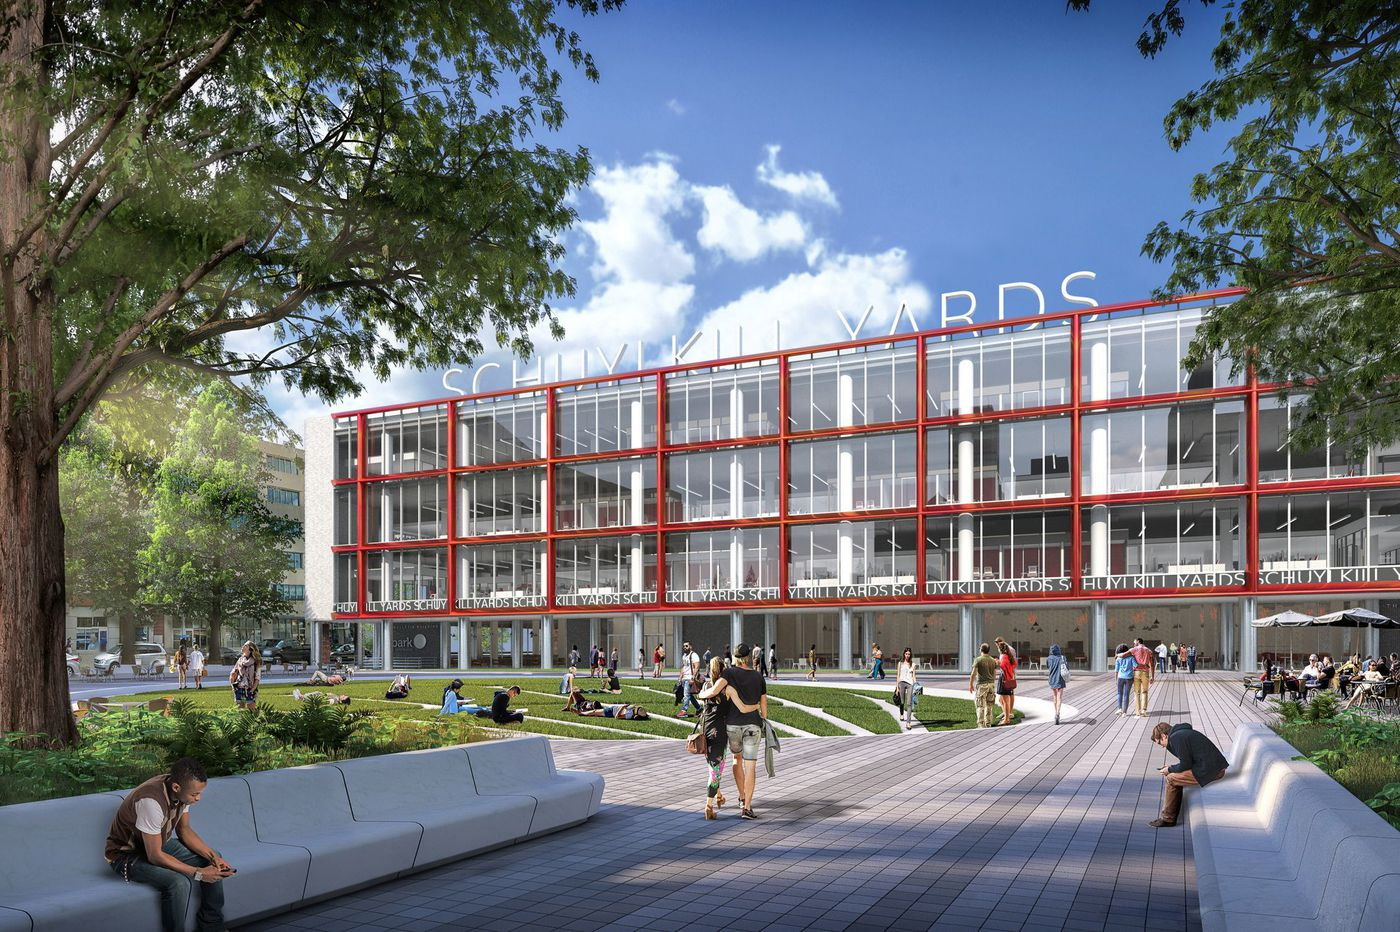 Updating an old newspaper building for Philadelphia's new Schuylkill Yards innovation district | Inga Saffron